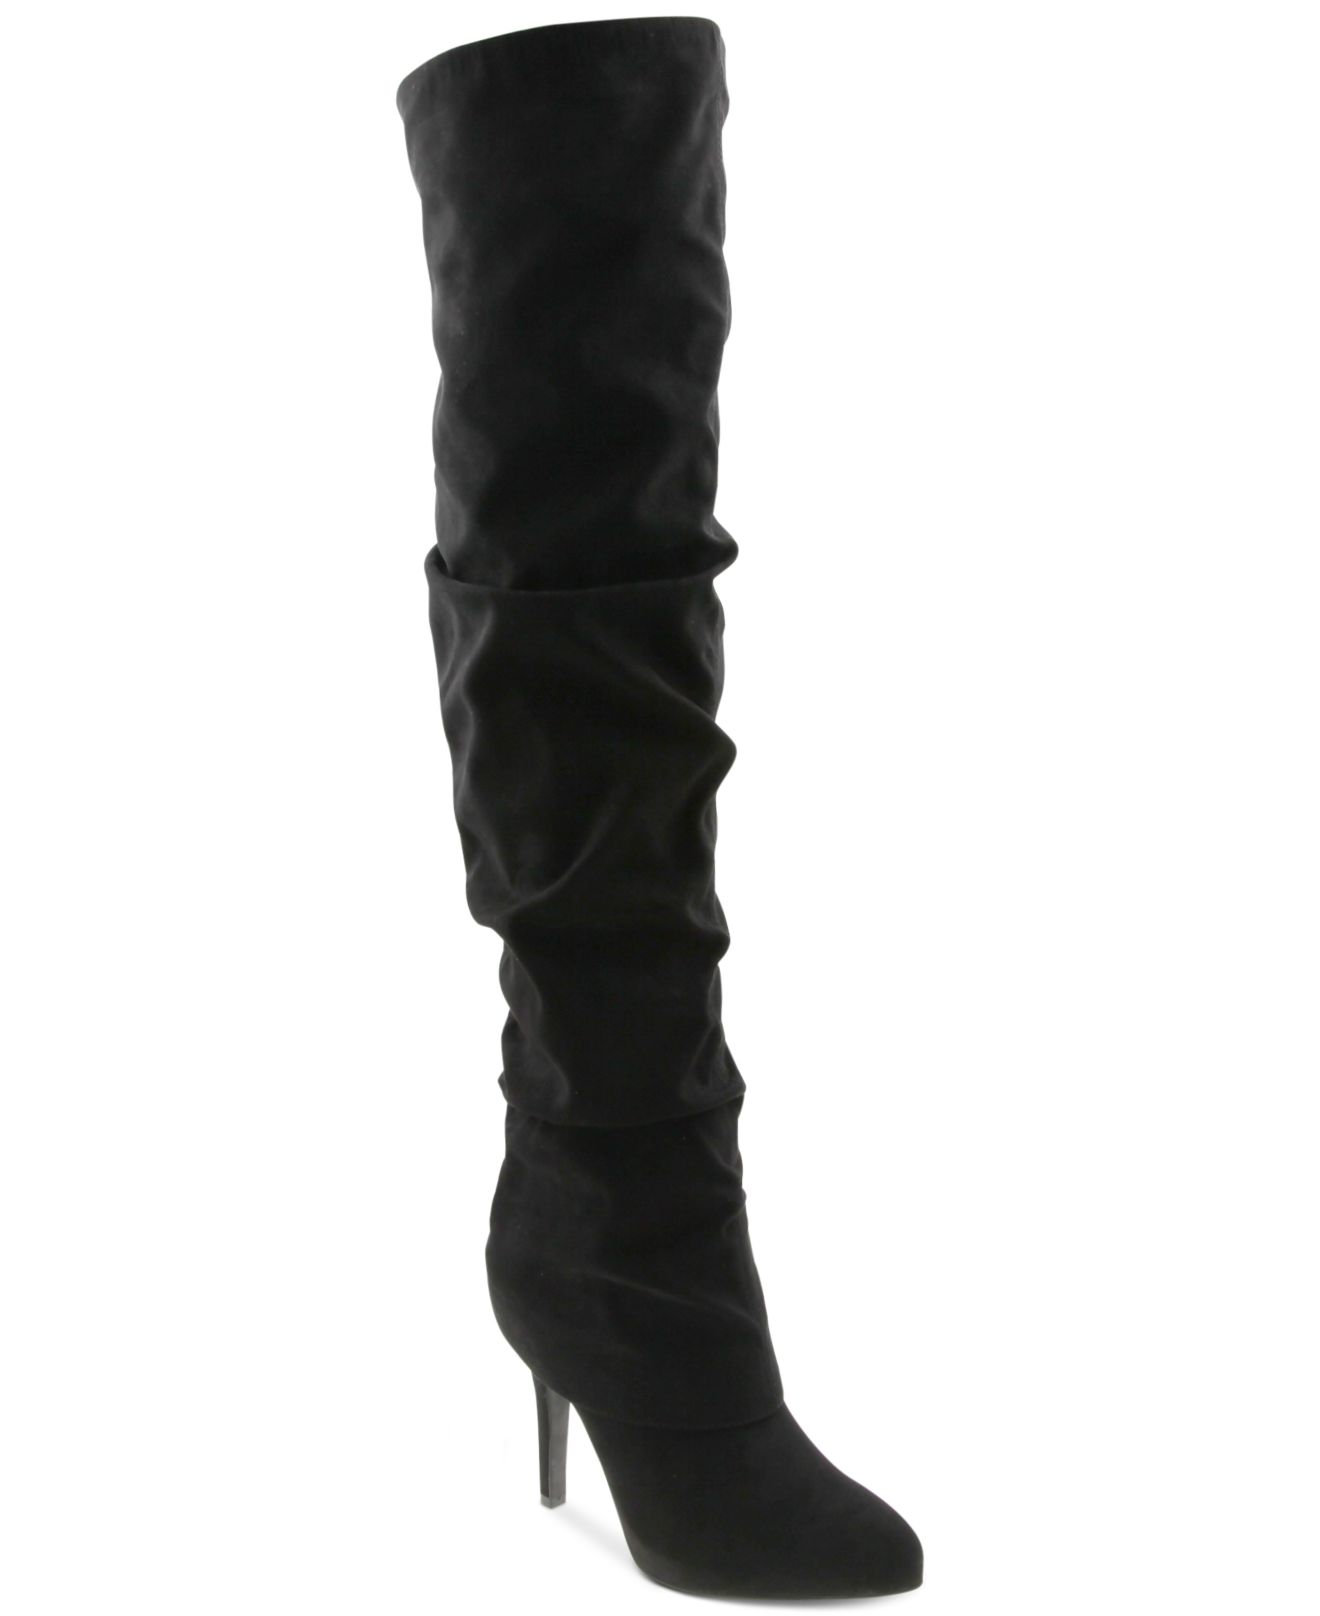 Black Over The Knee Boots it's a good suggestion to obtain a glance at a number of the fashion runways outfits to check out which models you want very best. rusticzcountrysstylexhomedecor.tk Black Over The Knee Boots updated their cover photo.